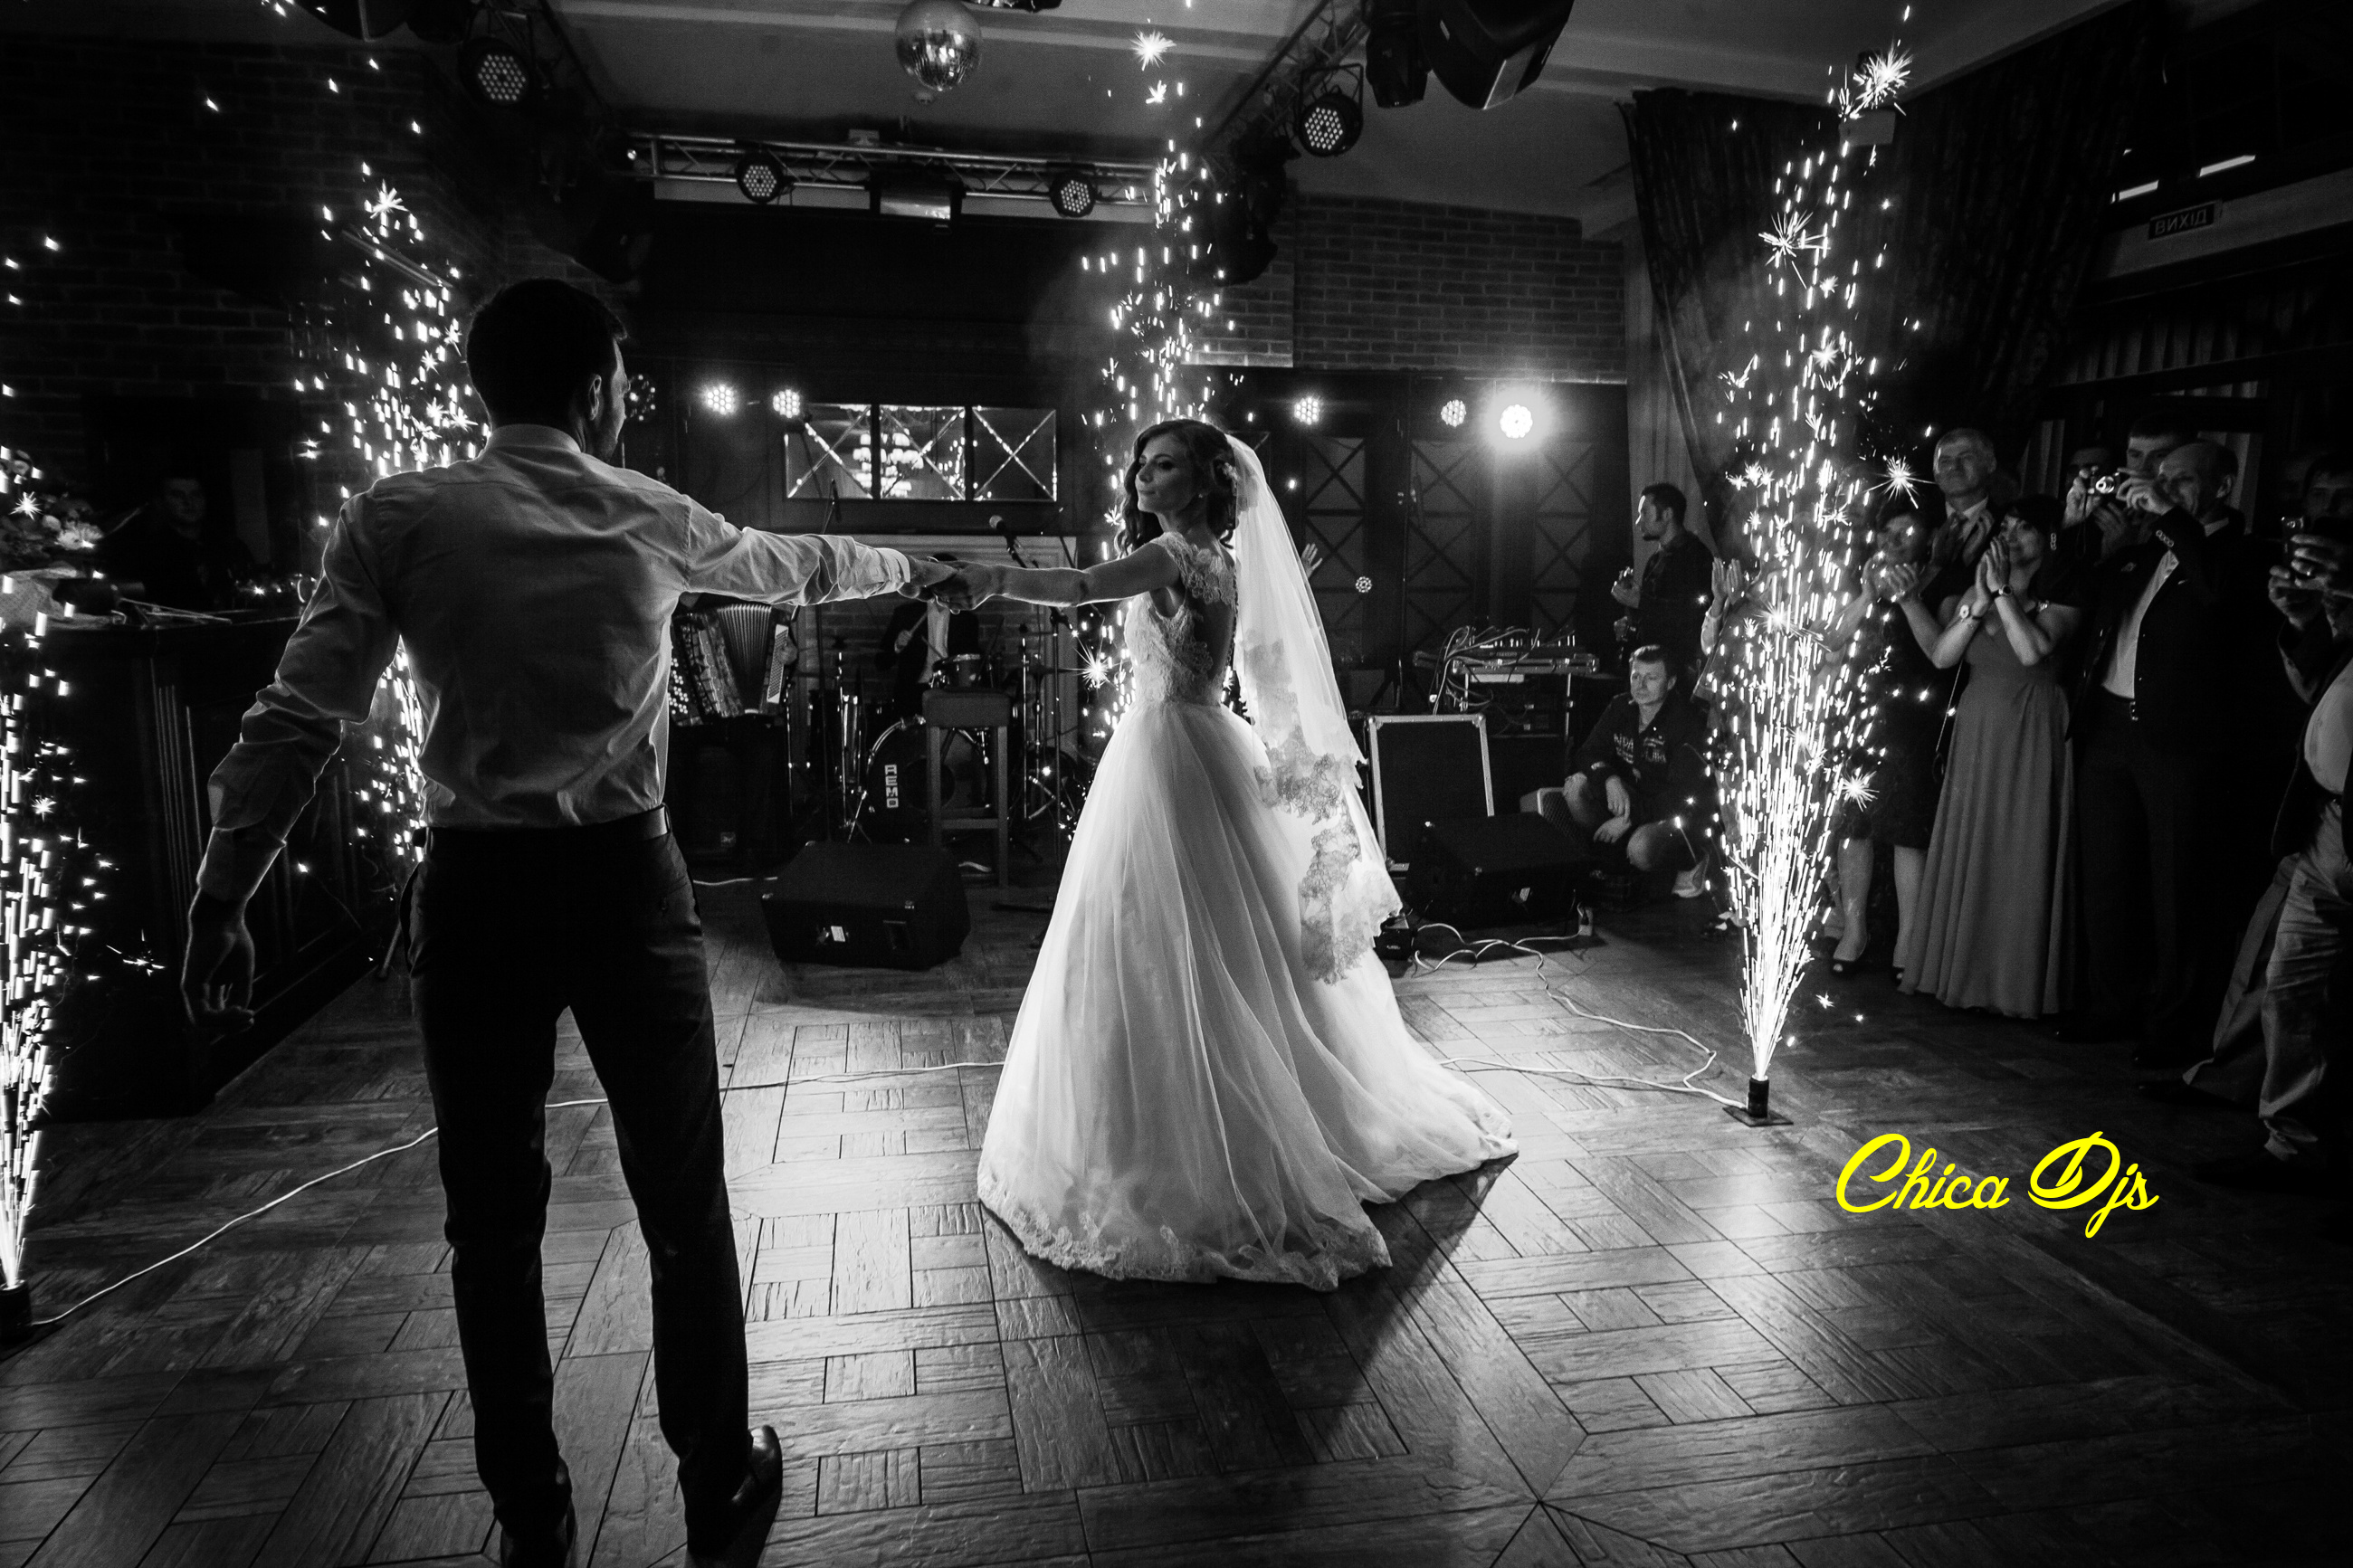 How to choose the right DJ for your Wedding. Chica DJs